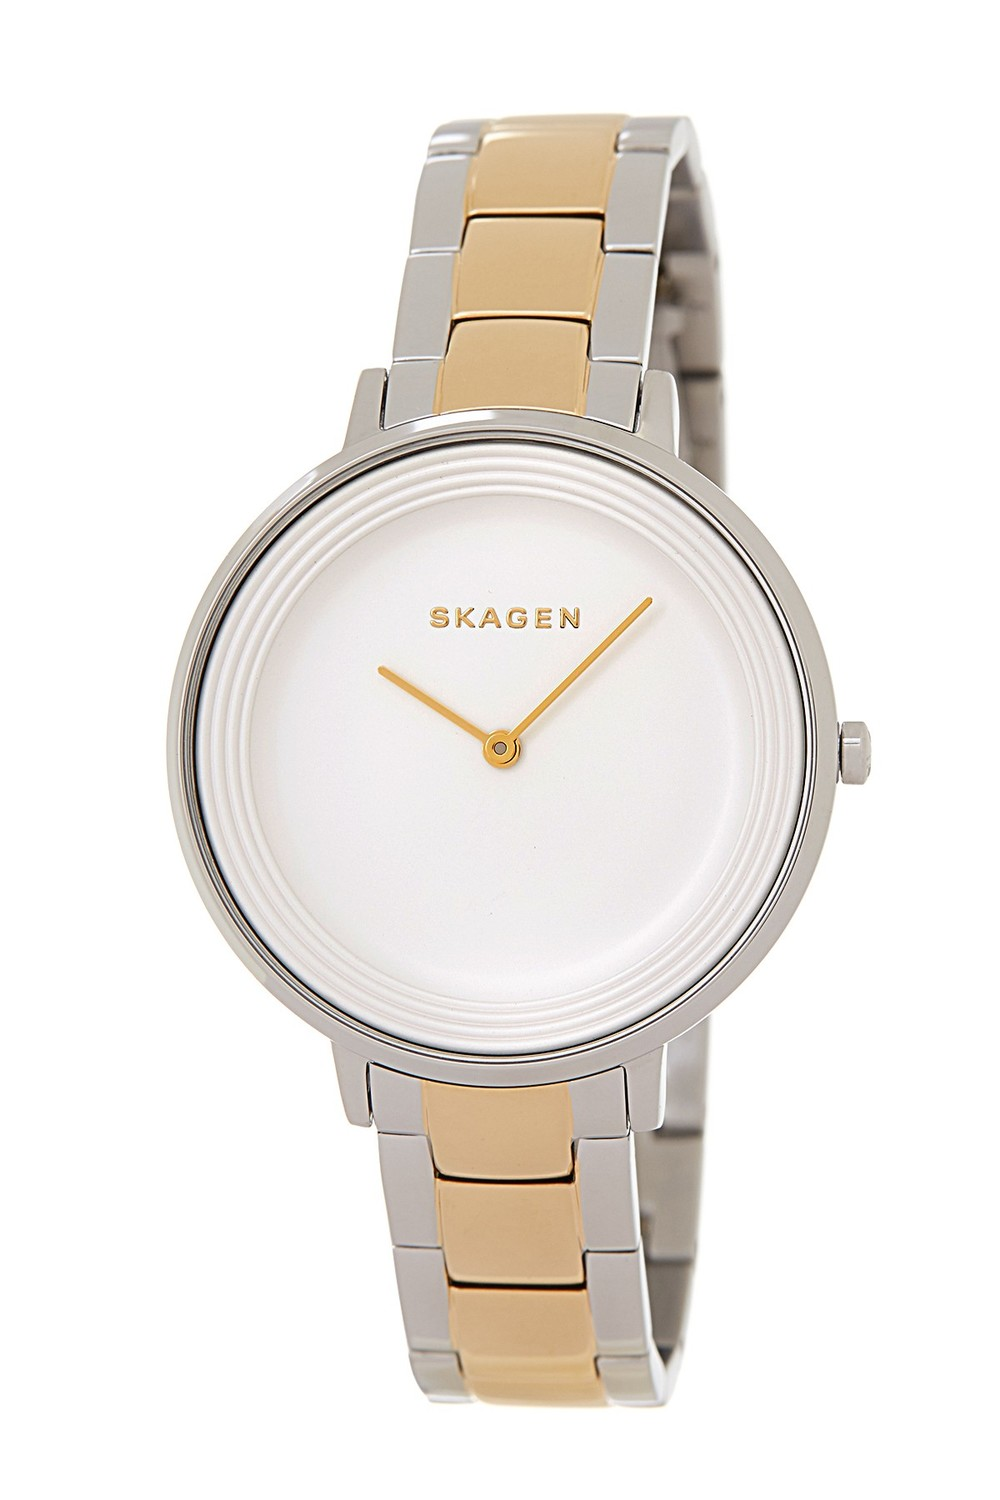 Skagen Ditte Watch. Nordstrom Rack. Was: $175 Now: $86.